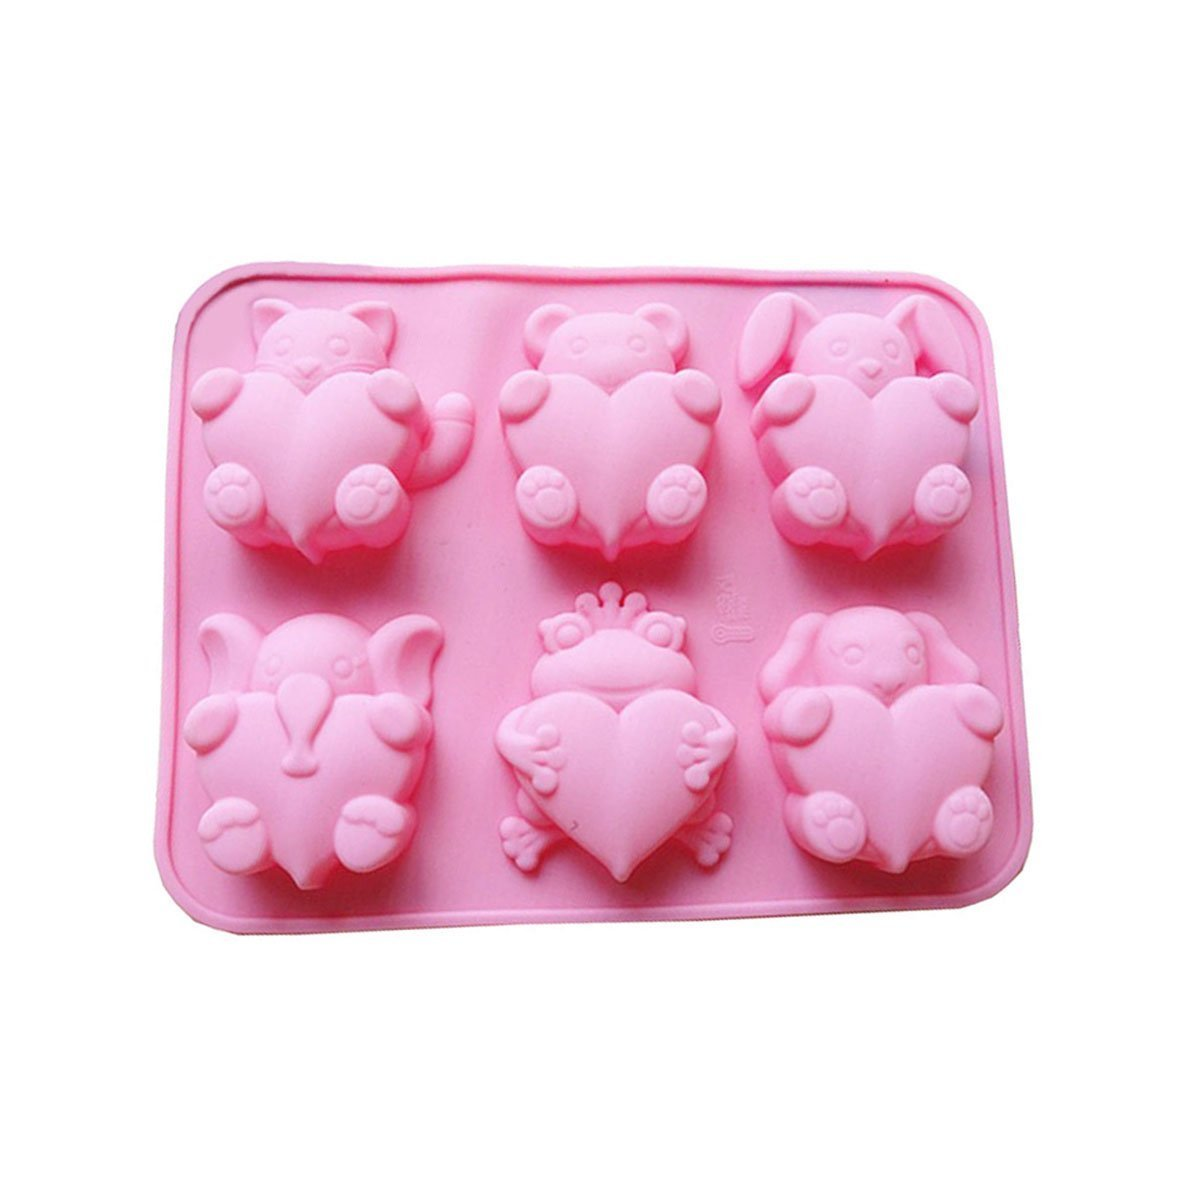 Cherion 6 Cavities Different Cute Animal-shaped Love Silicone Cake Baking Mold Handmade Soap Moulds Cake Pan Muffin Cups Biscuit Chocolate Ice Cube Tray DIY Mold, Pink